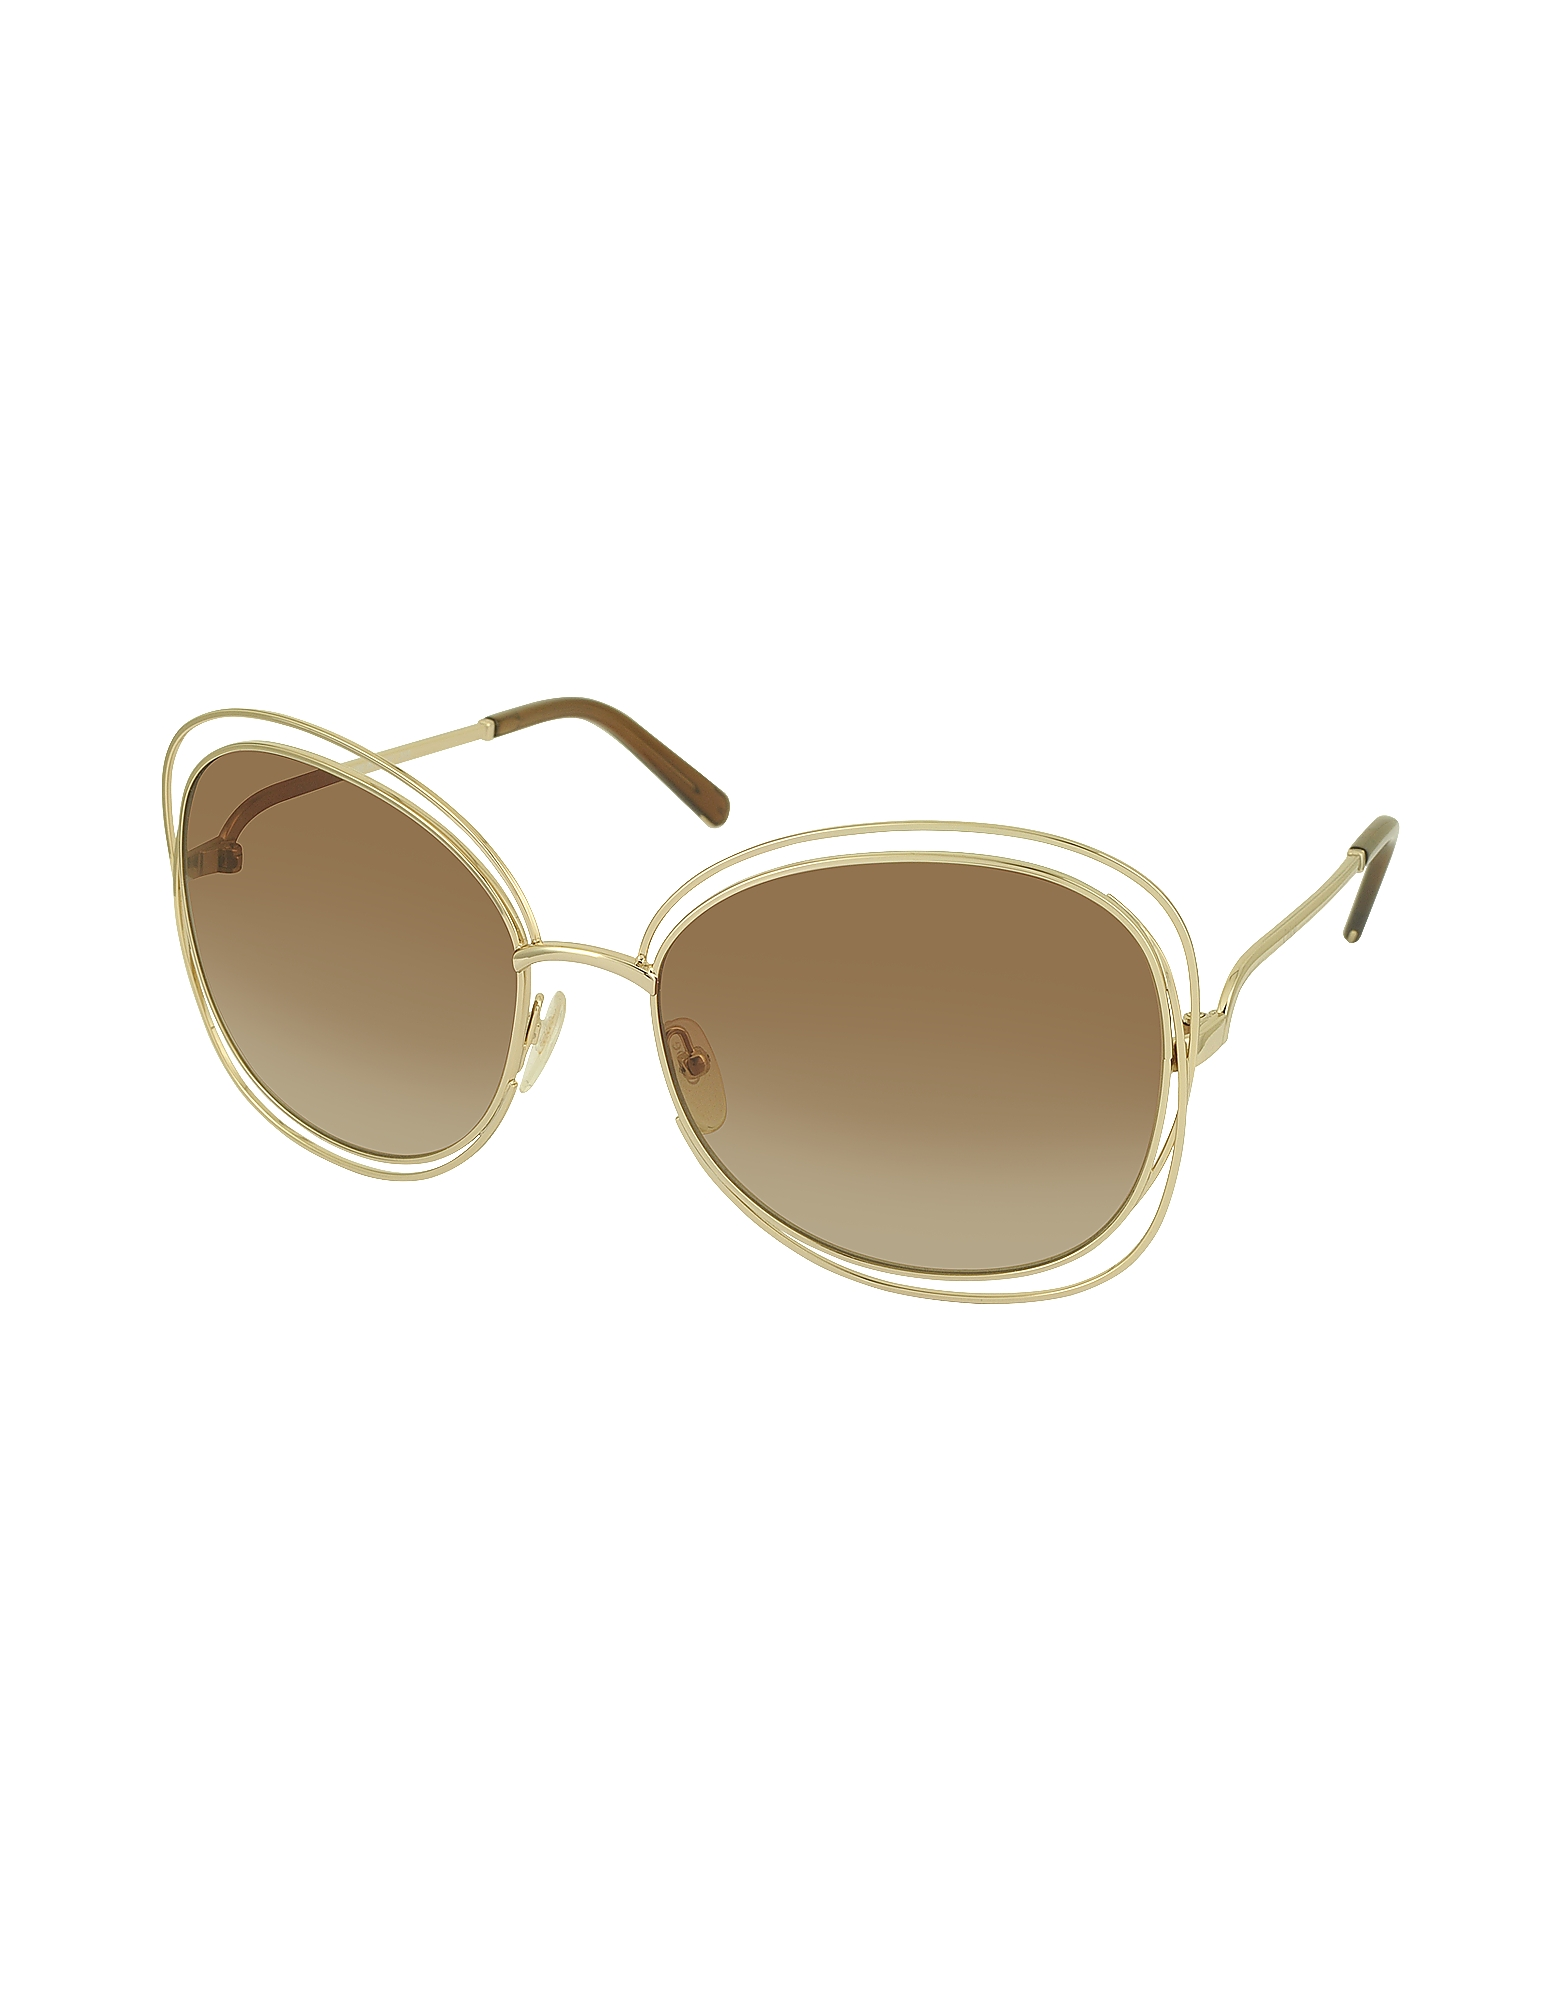 CARLINA CE 119S 786 Gold Metal Square Women's Sunglasses от Forzieri.com INT